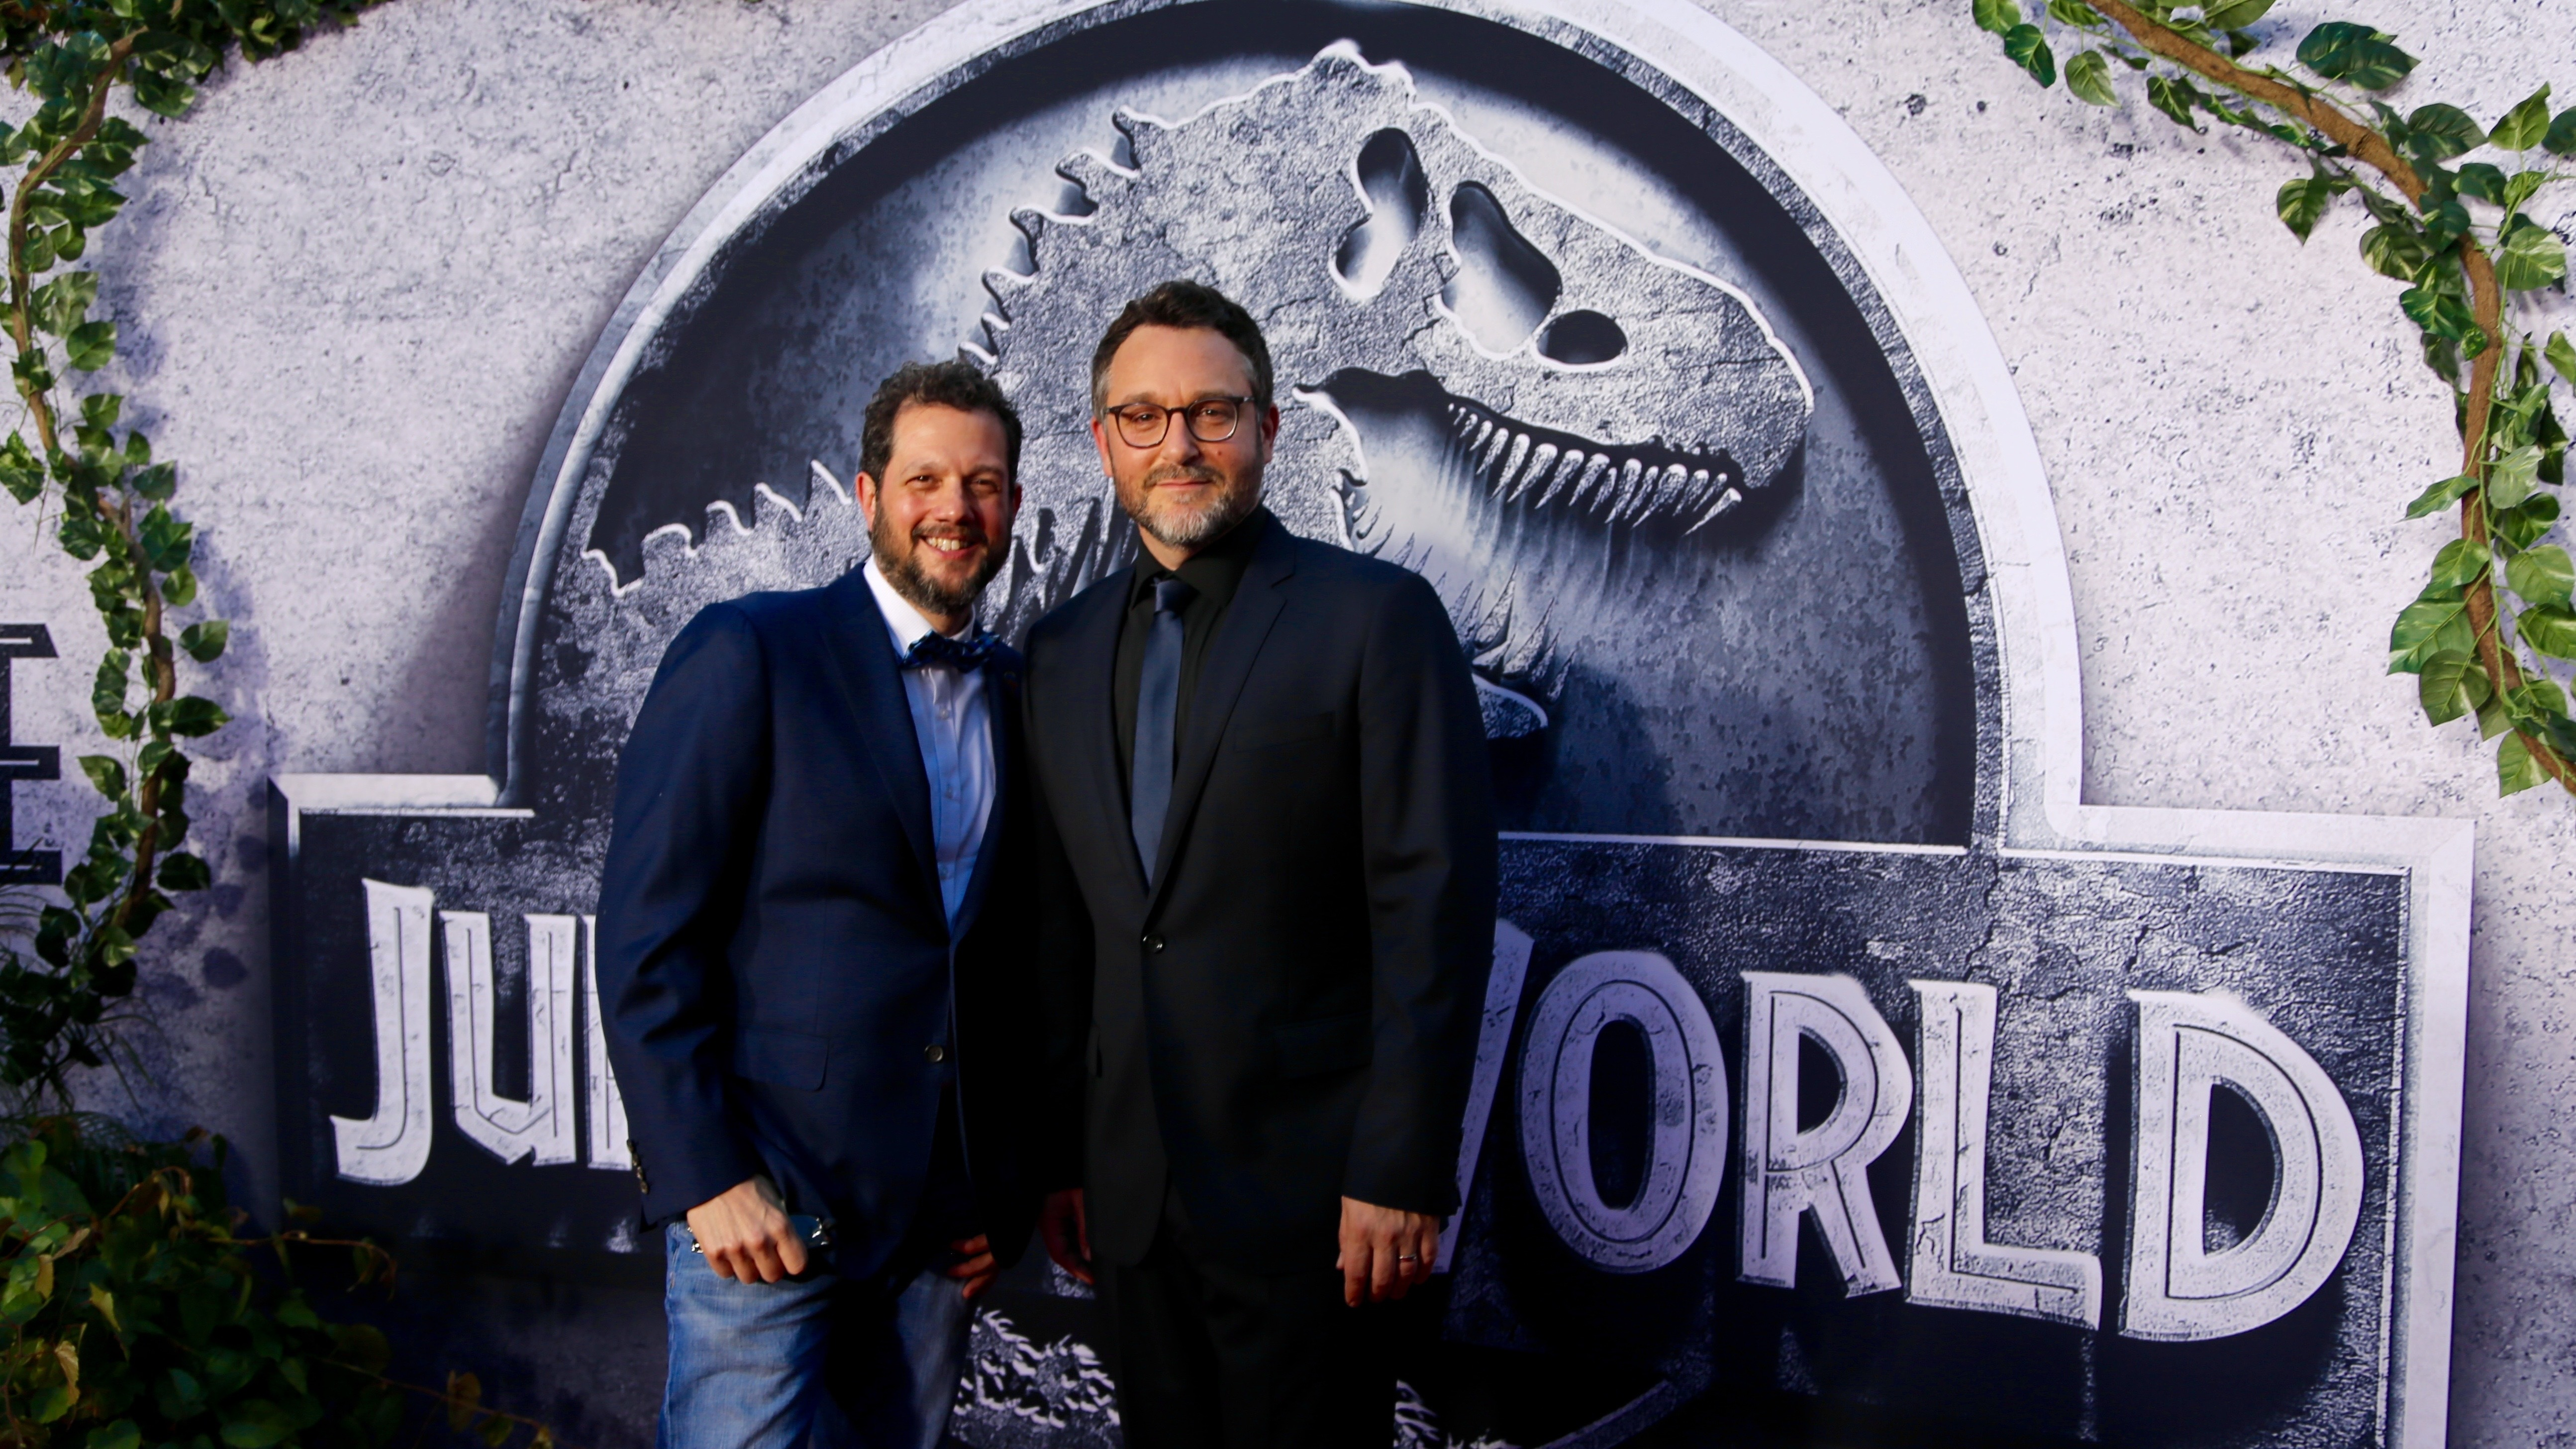 Michael Giacchino On Coming Home To Write Music For 'Jurassic World'